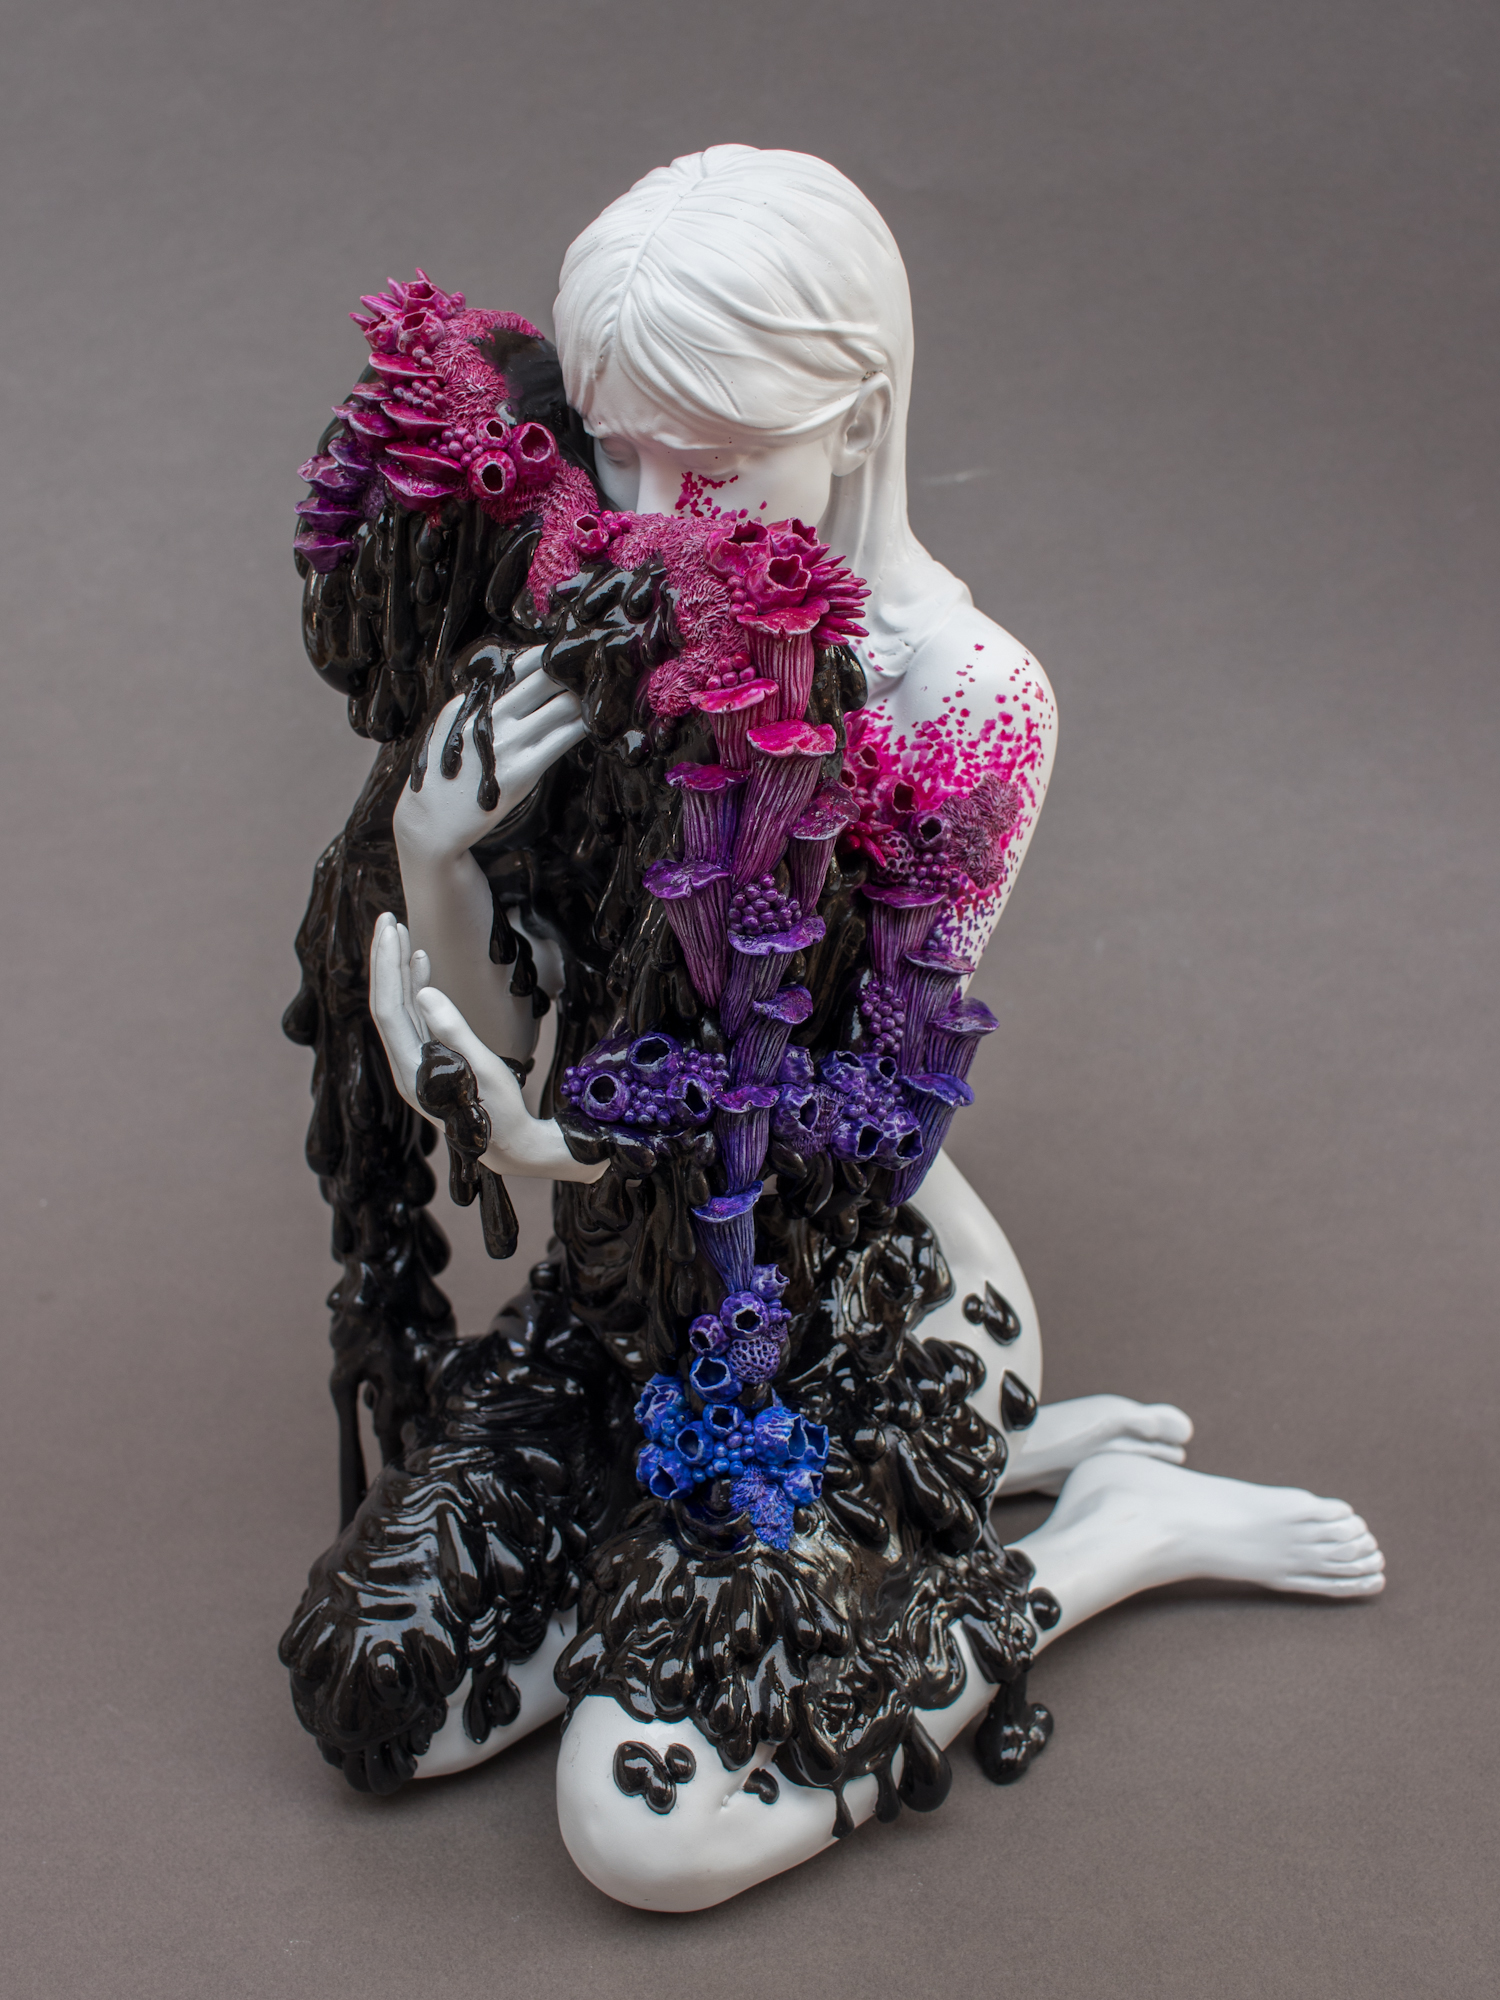 Sorrowful Sculptures Designed in a Three-Part Collaboration Meditate on Life, Loss, and Regeneration | Colossal